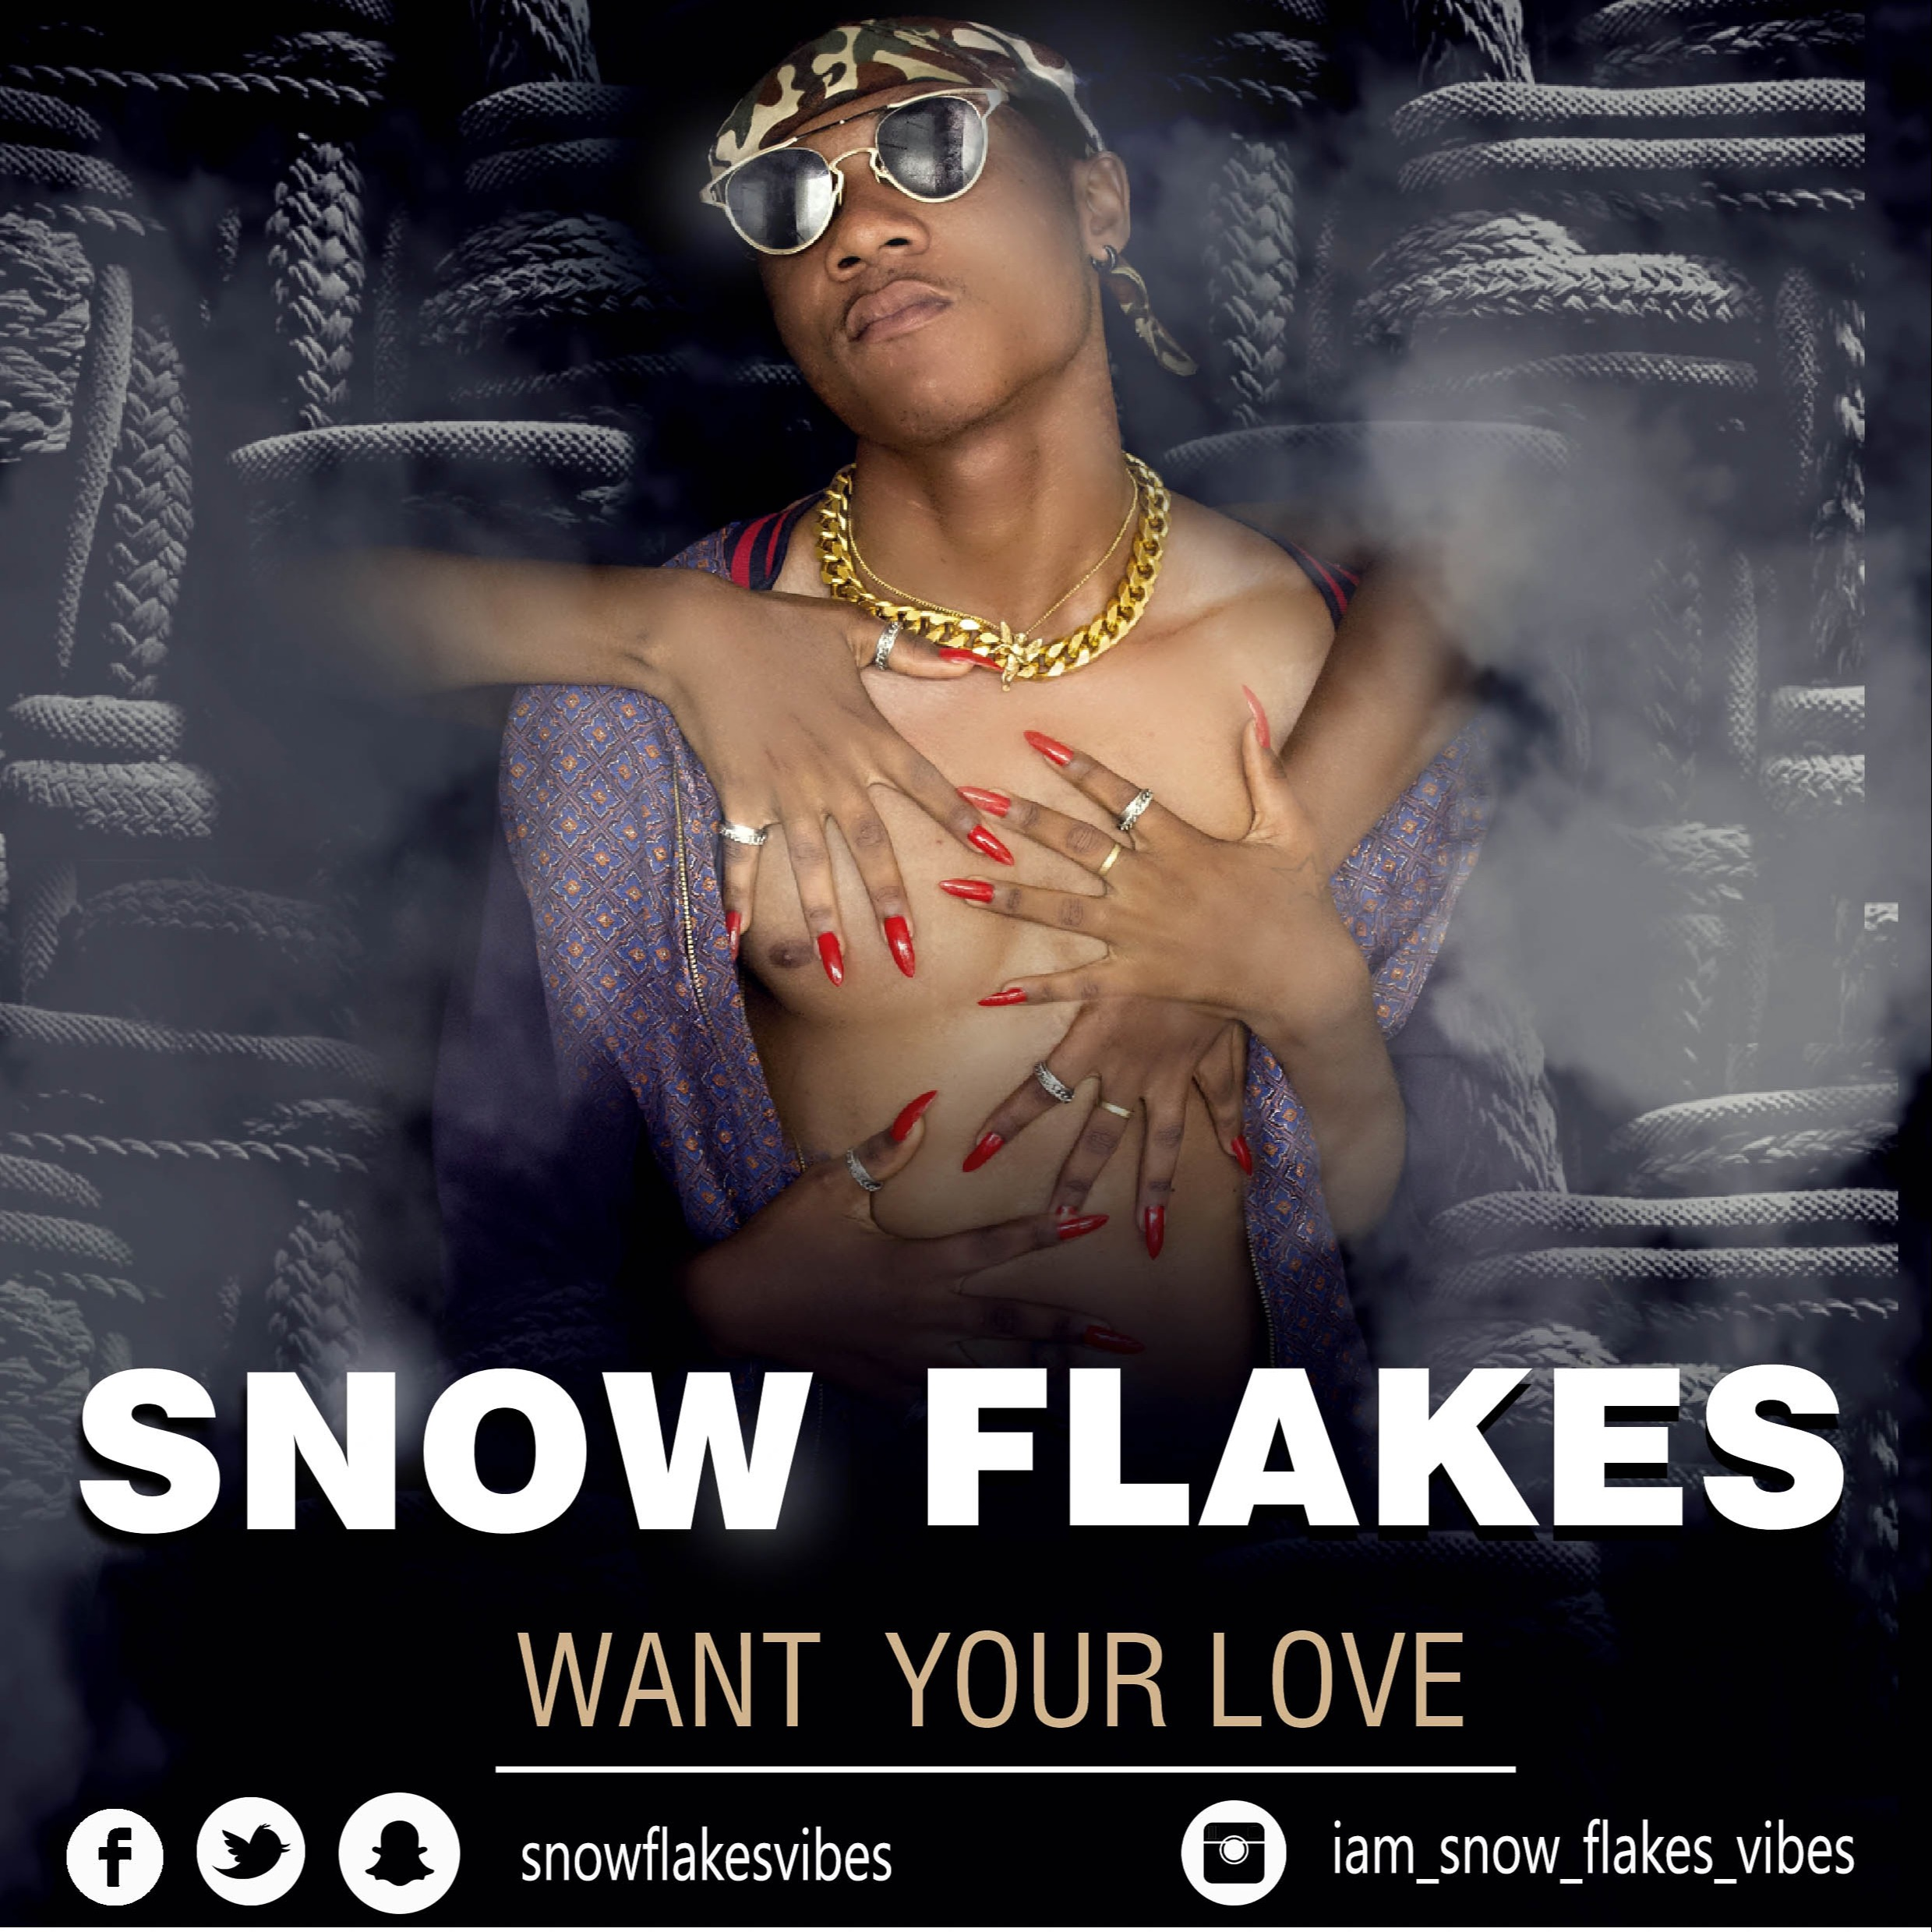 WANT YOUR LOVE